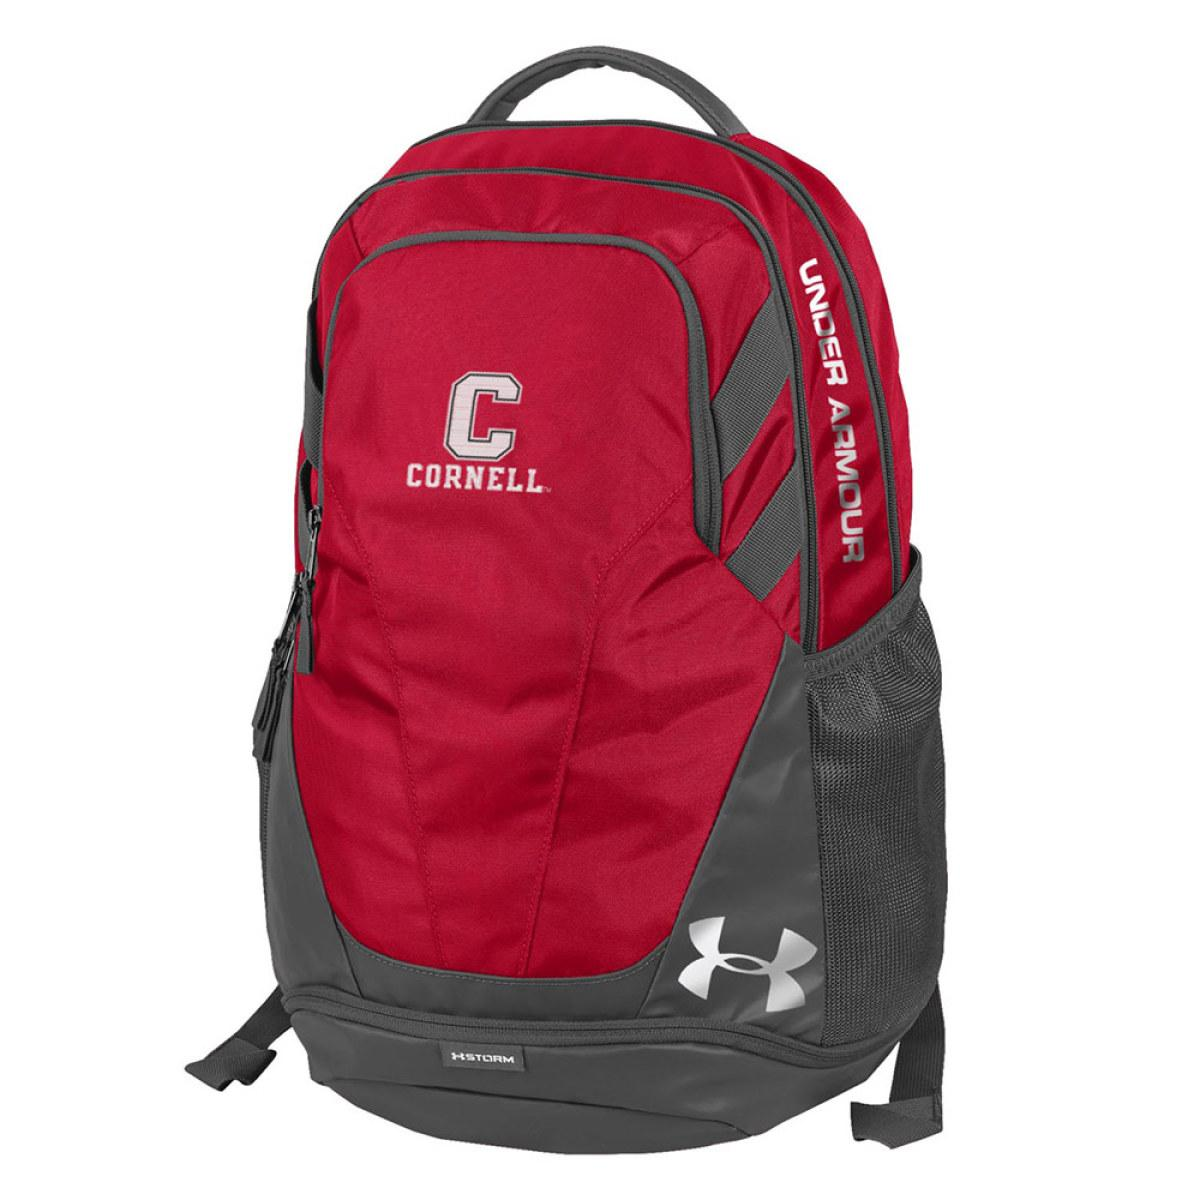 a59d83d9f72 Under Armour Backpack - Red And Gray - Up To 13 Inch Laptop